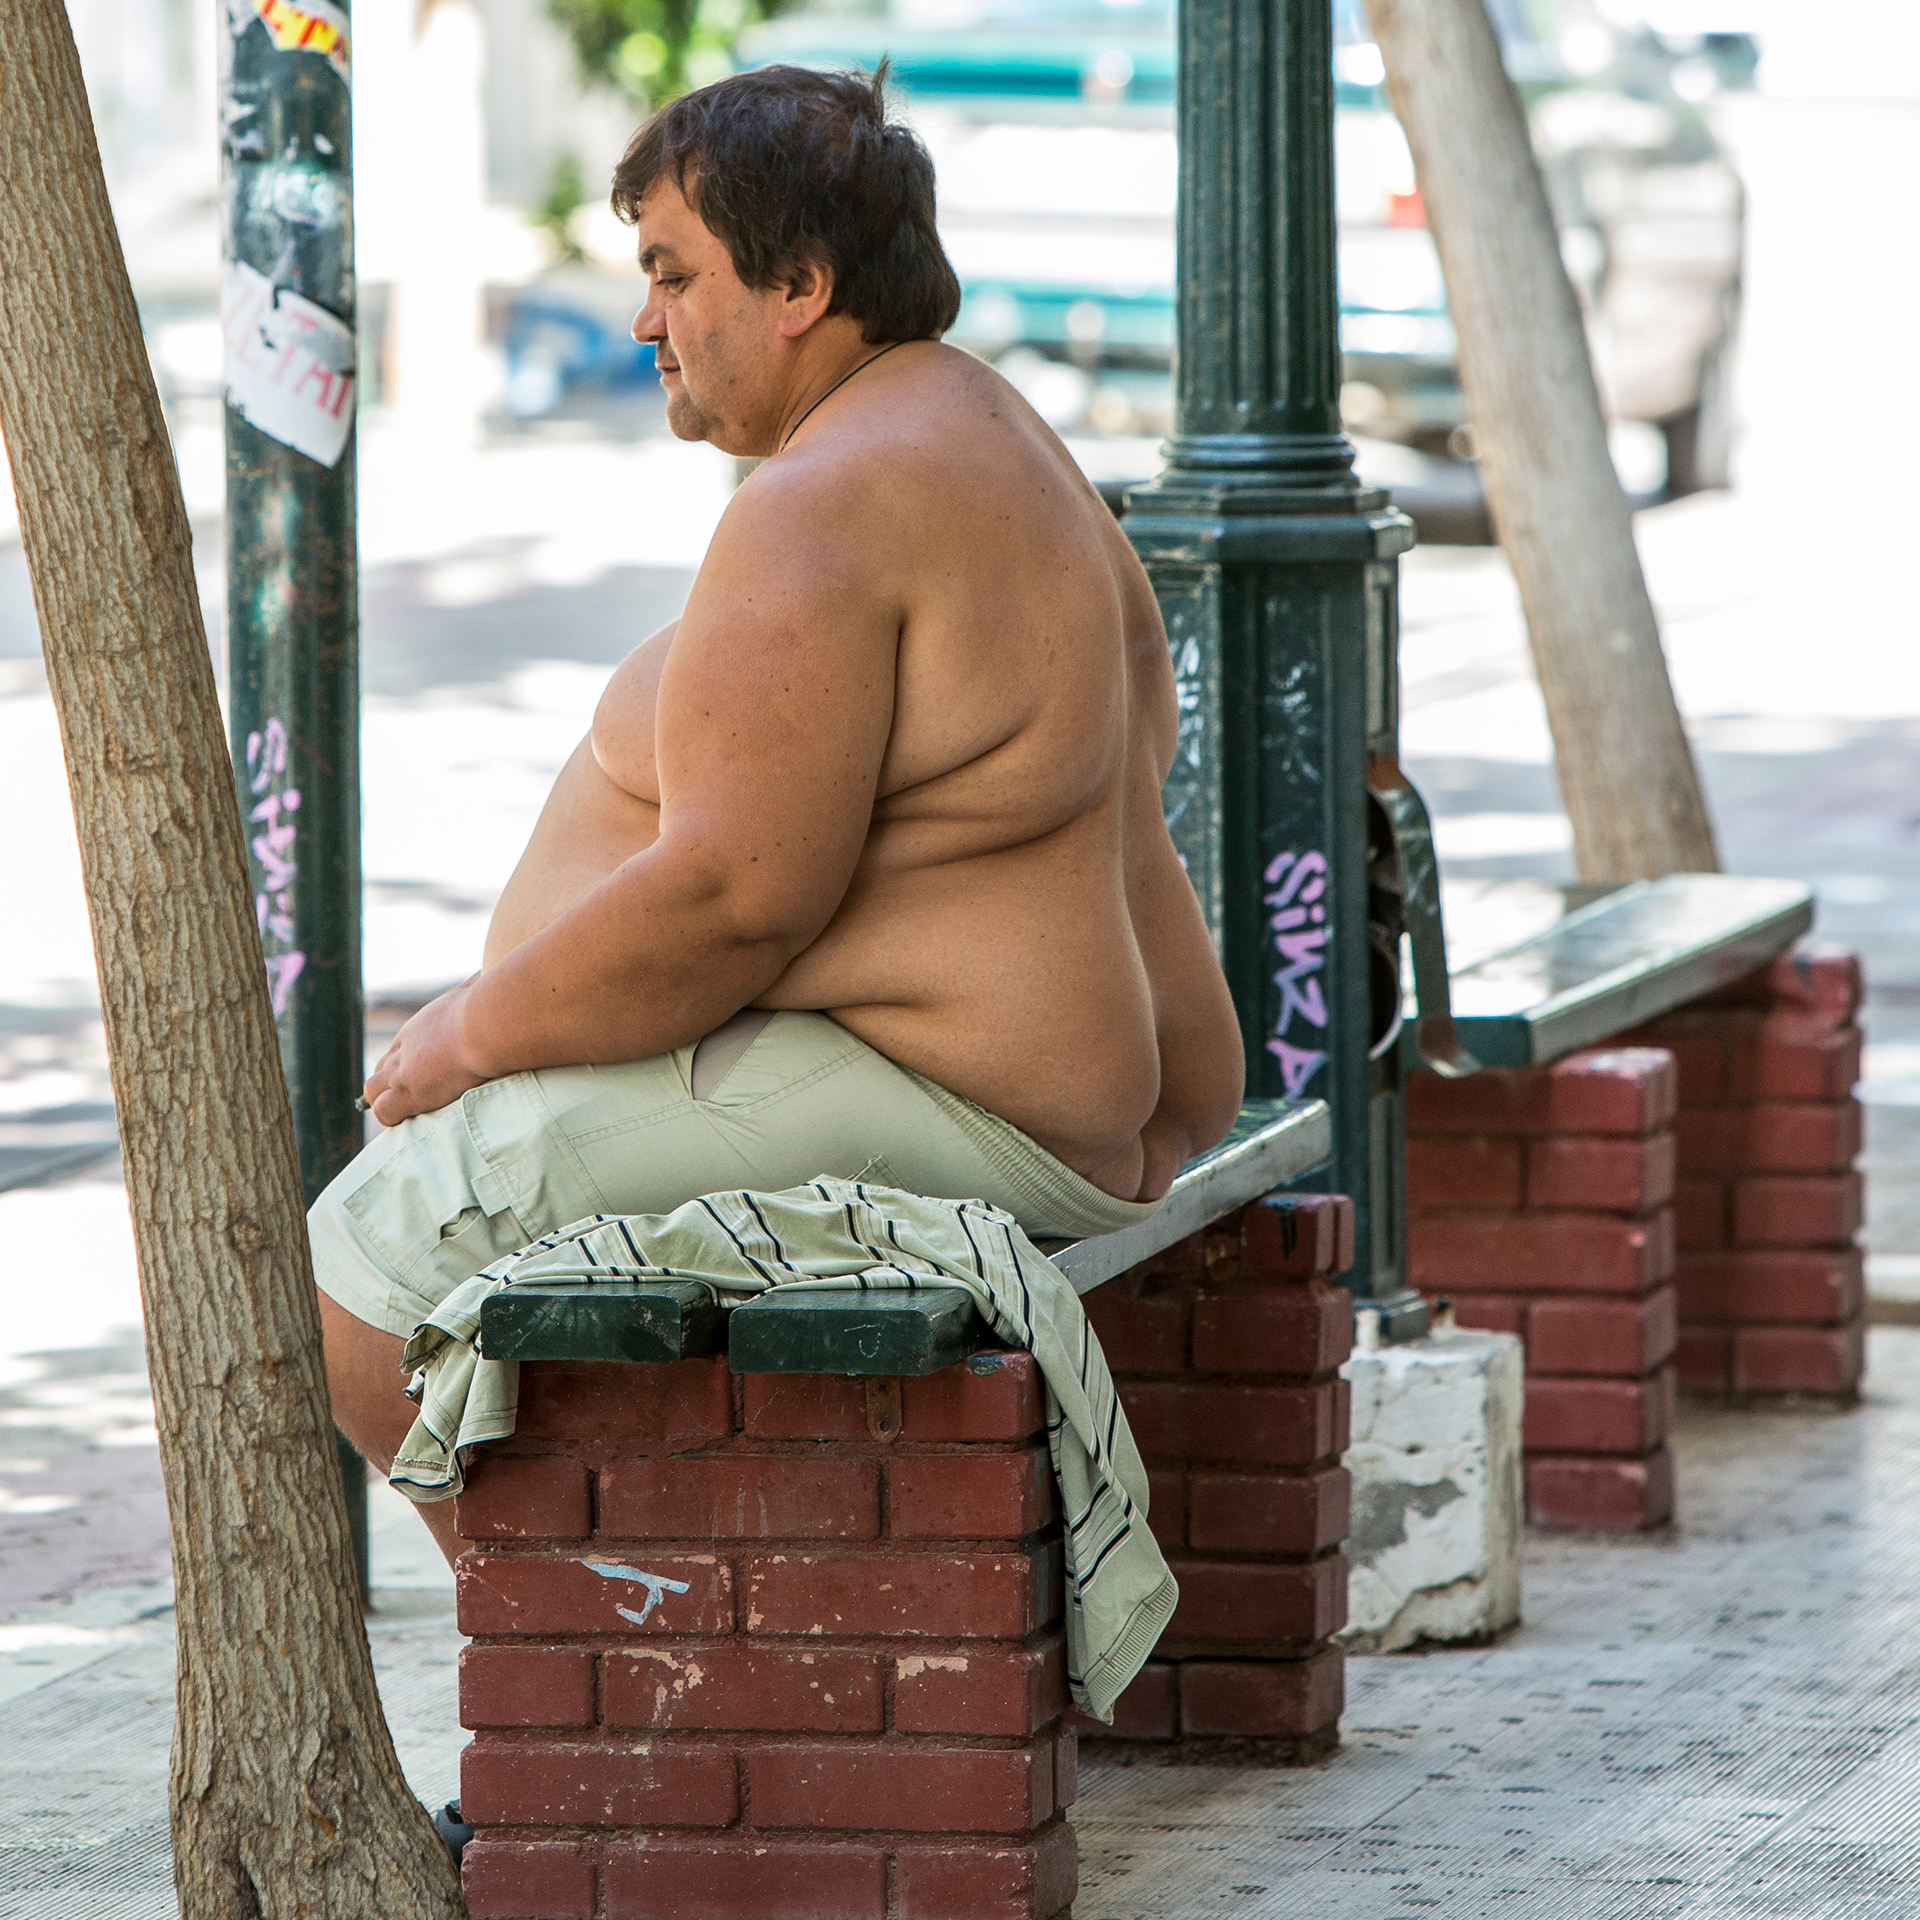 Dreamer, Corinth, Greece, Greek, fat, overweight, chubby